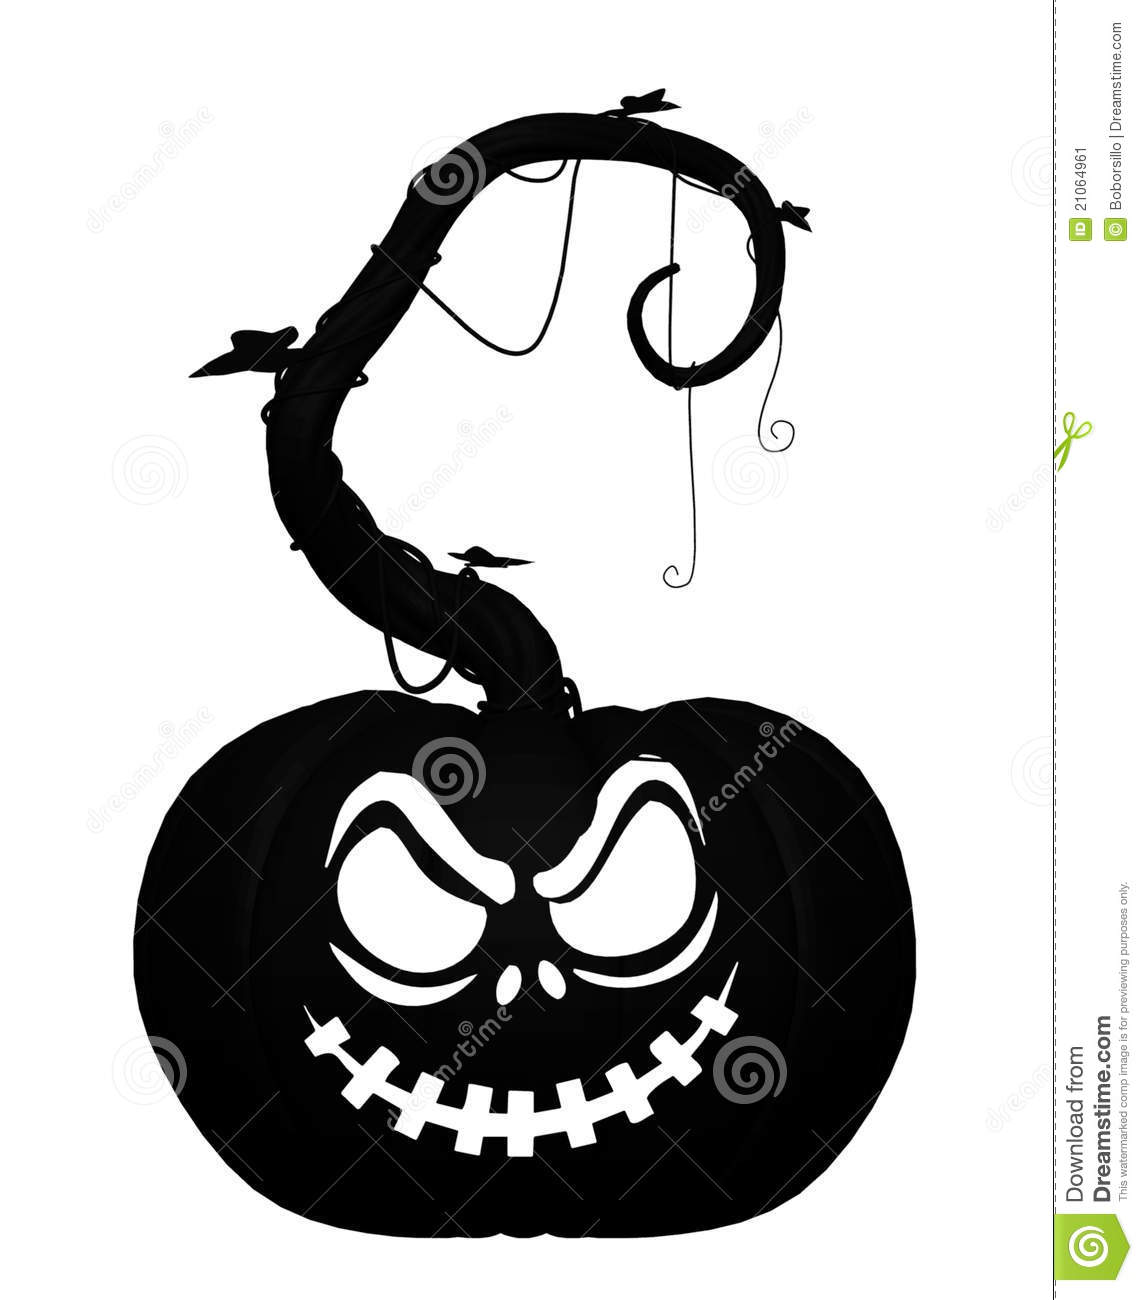 1143x1300 Scary Pumpkin Clipart Black And White Clip Art Images